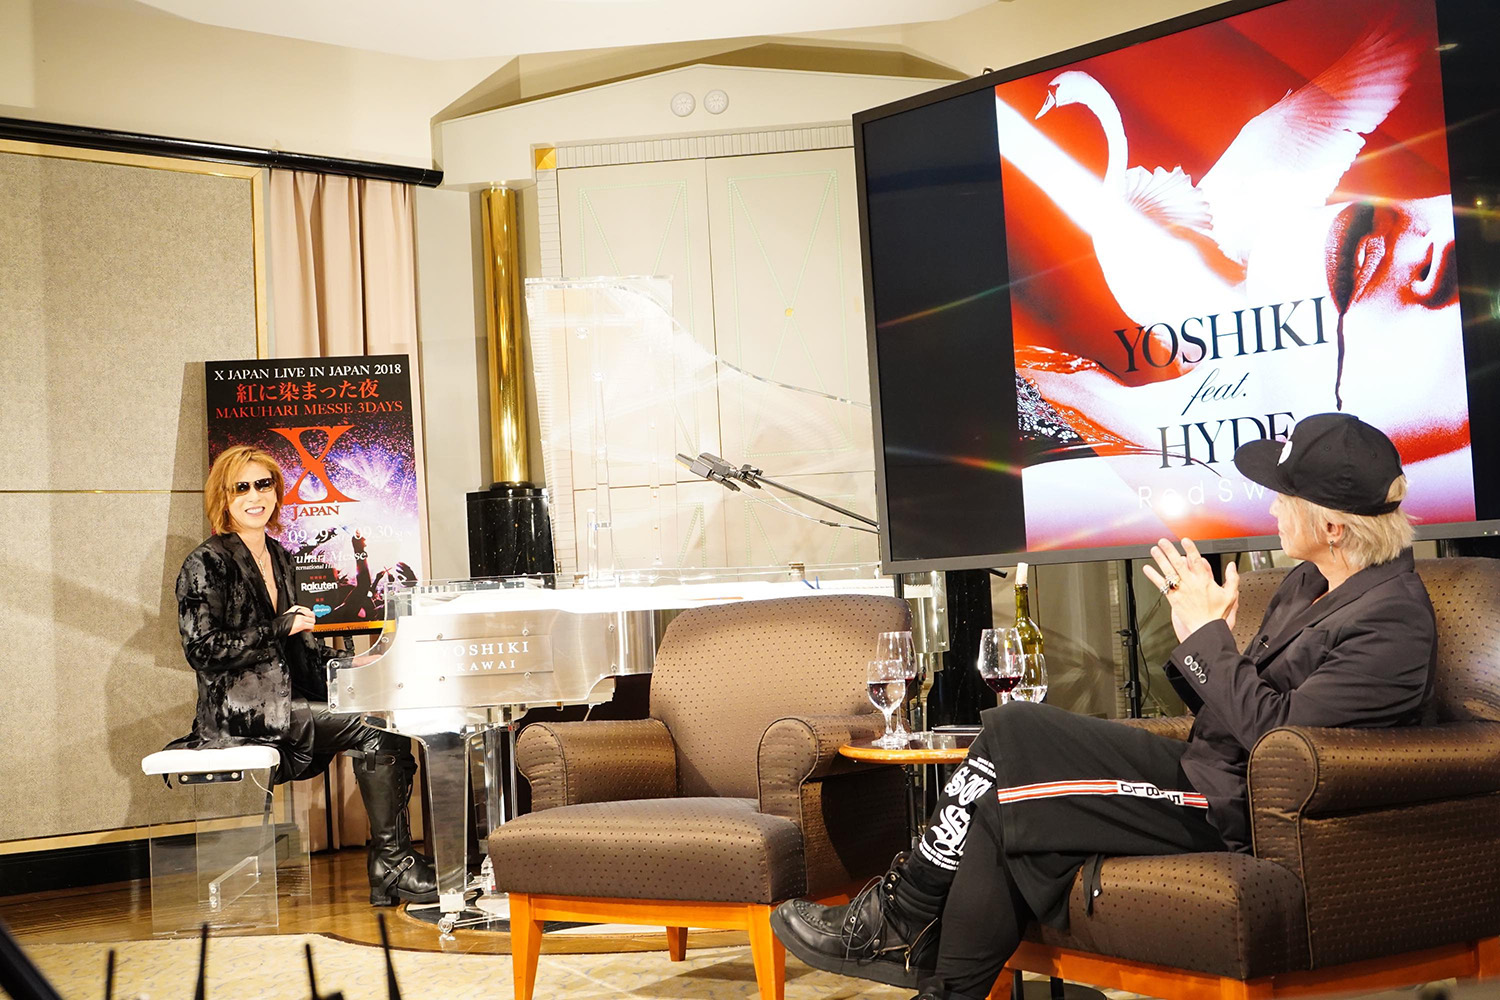 JRock247-Yoshiki-Hyde-Red-Swan-Music-Station-20180917-J0647